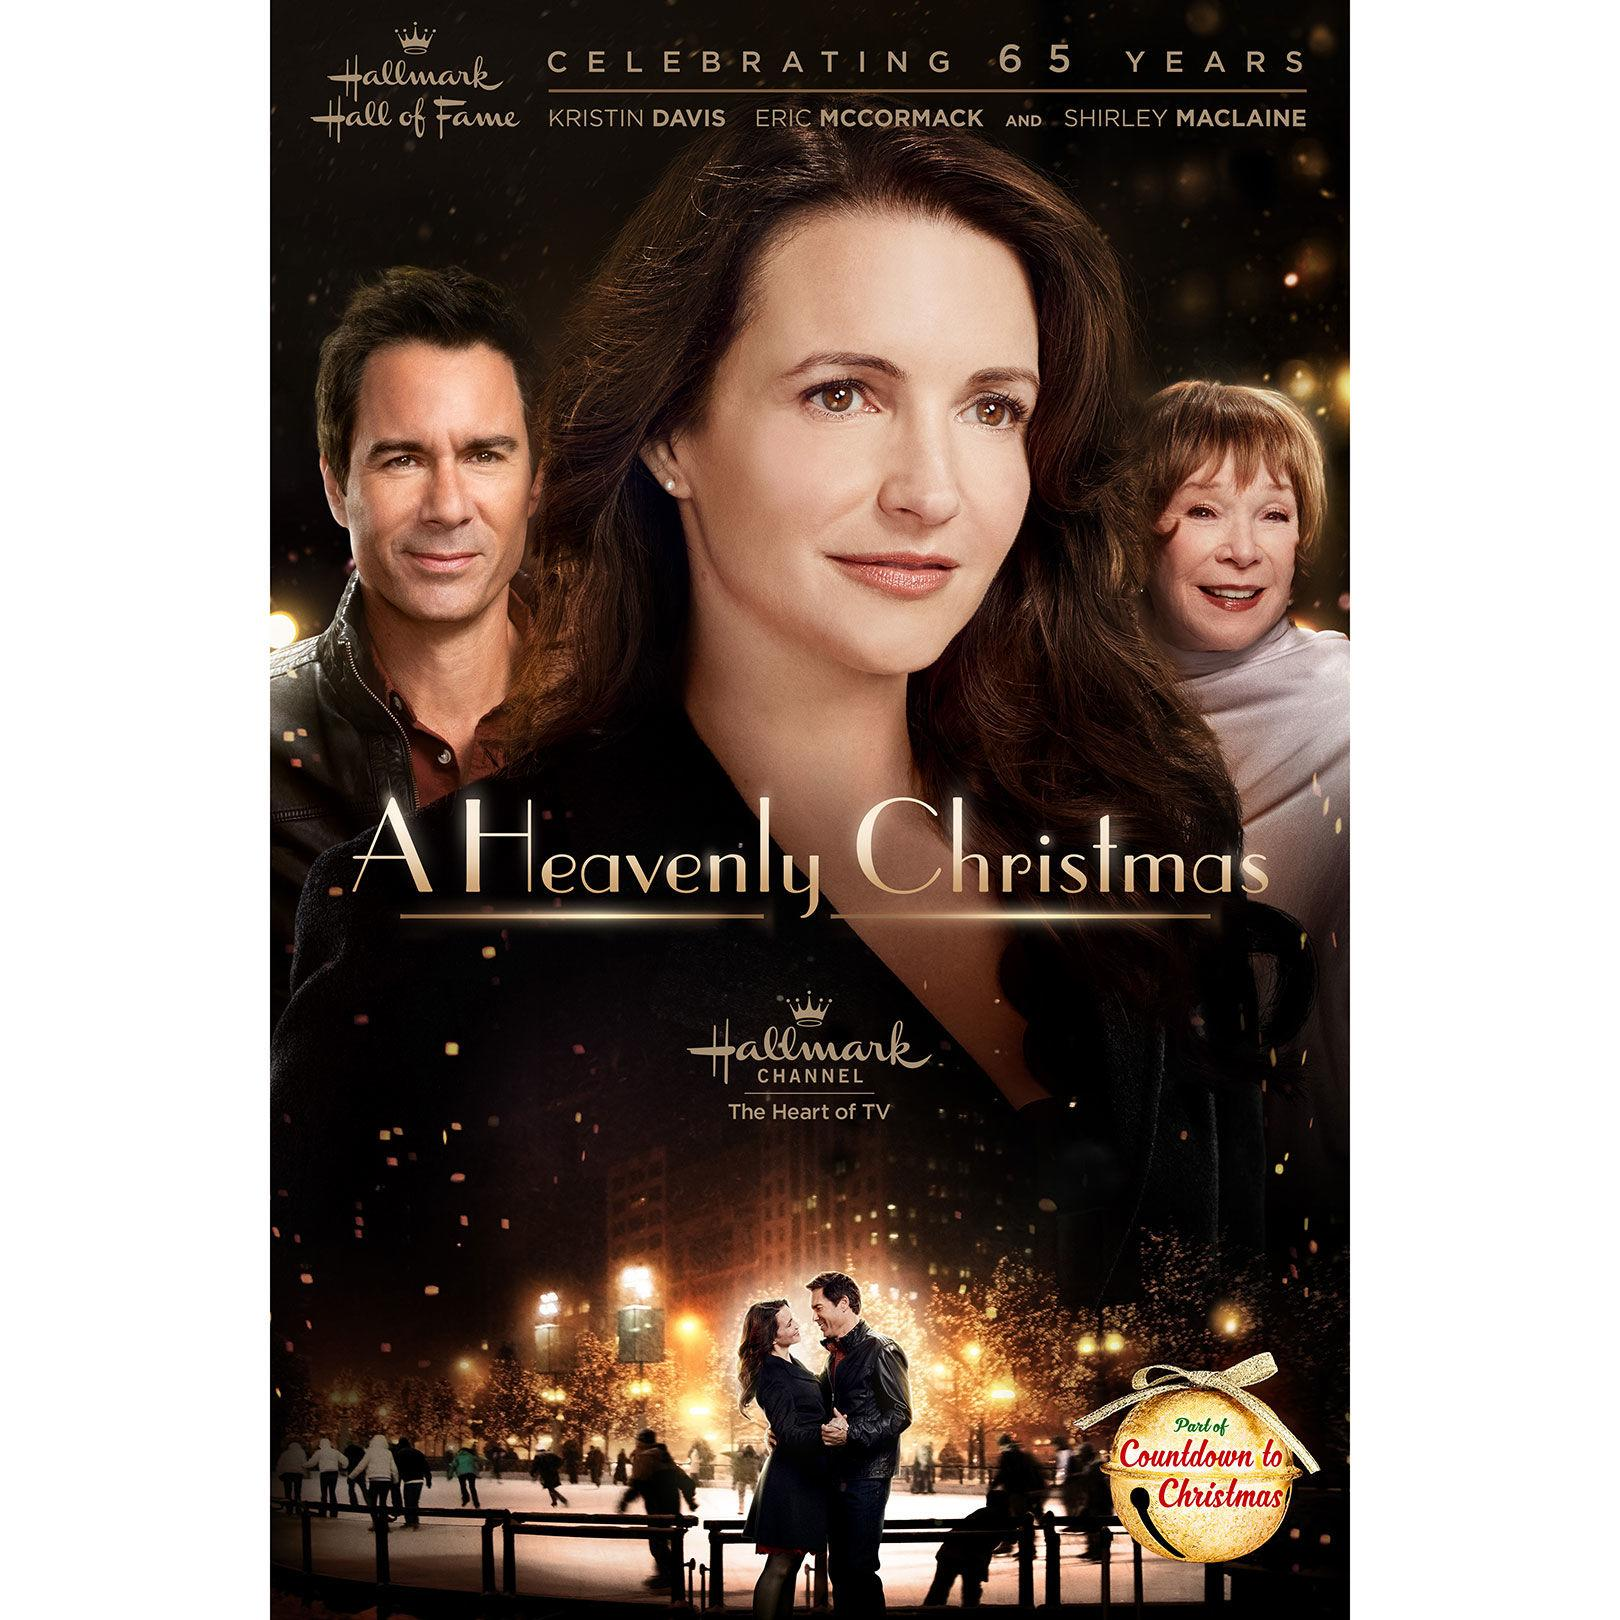 <p><b>Sunday, July 23, 5/4c</b></p> <p>Starring Kristin Davis (Eve), Eric McCormack (Max), and Shirley MacLaine (Pearl). Eve, a workaholic who never makes time for Christmas, family or friends, winds up in Heaven after her unfortunate death. In Heaven she is paired up with Pearl who will guide her in her Angel in Training. She's given a difficult case involving Max and his daughter and has to figure out a way to help him out of his despair without becoming too involved.</p>